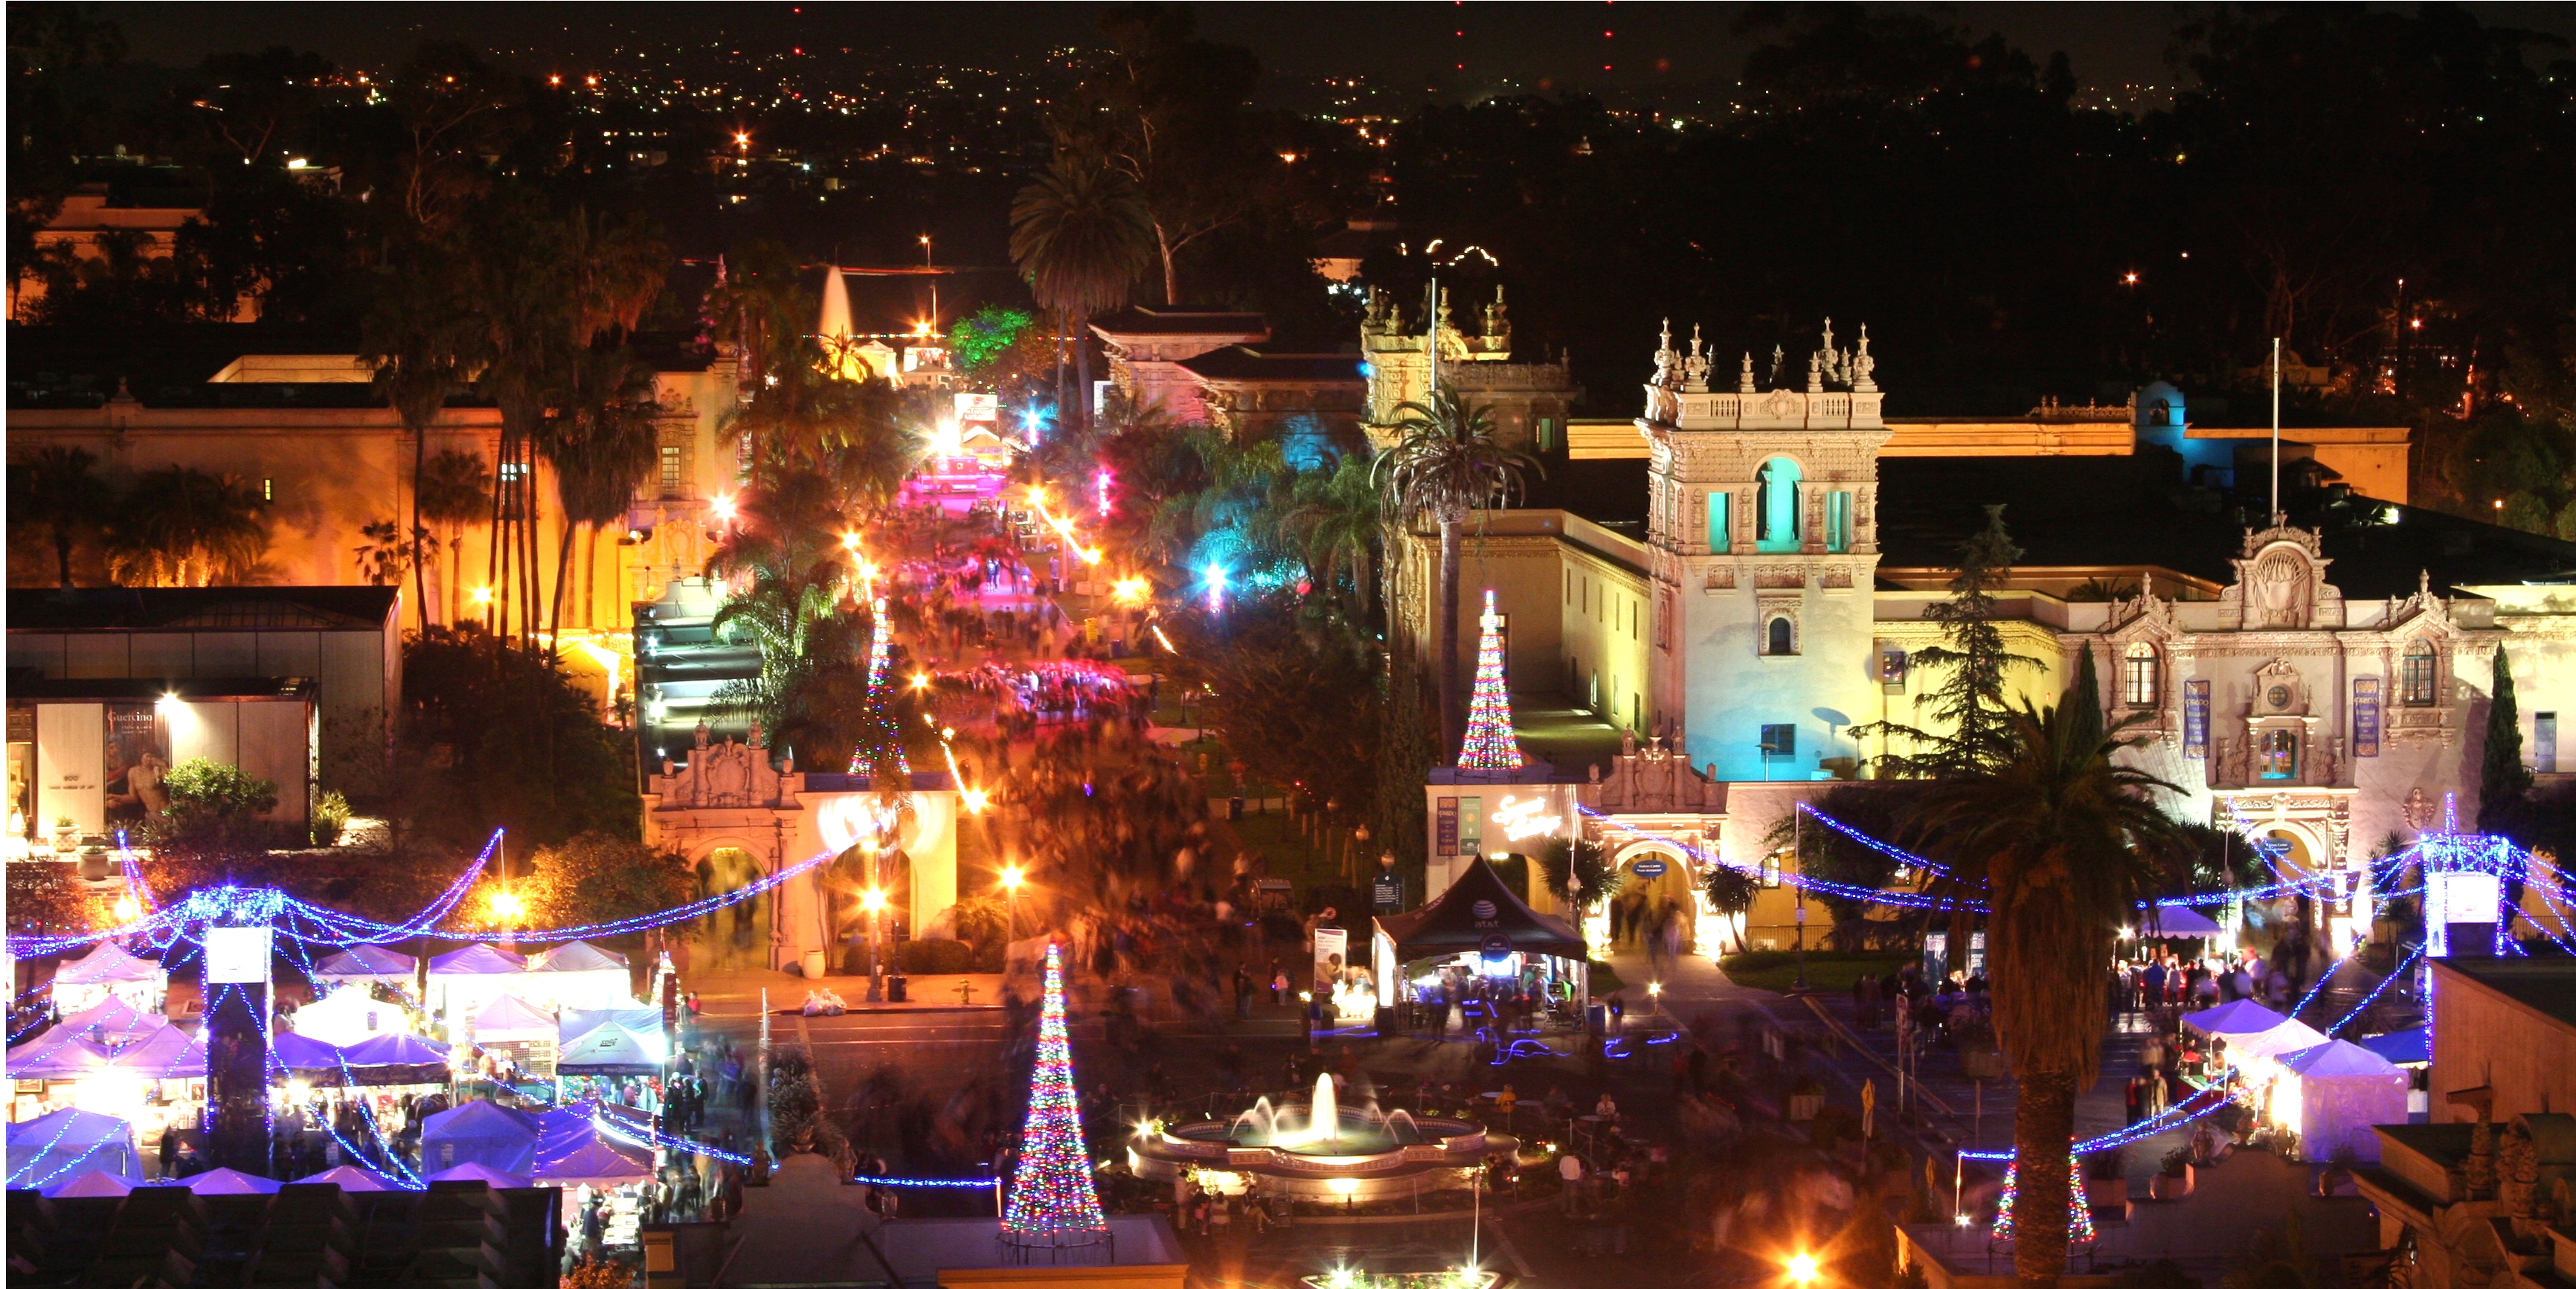 Balboa Park all lighted up